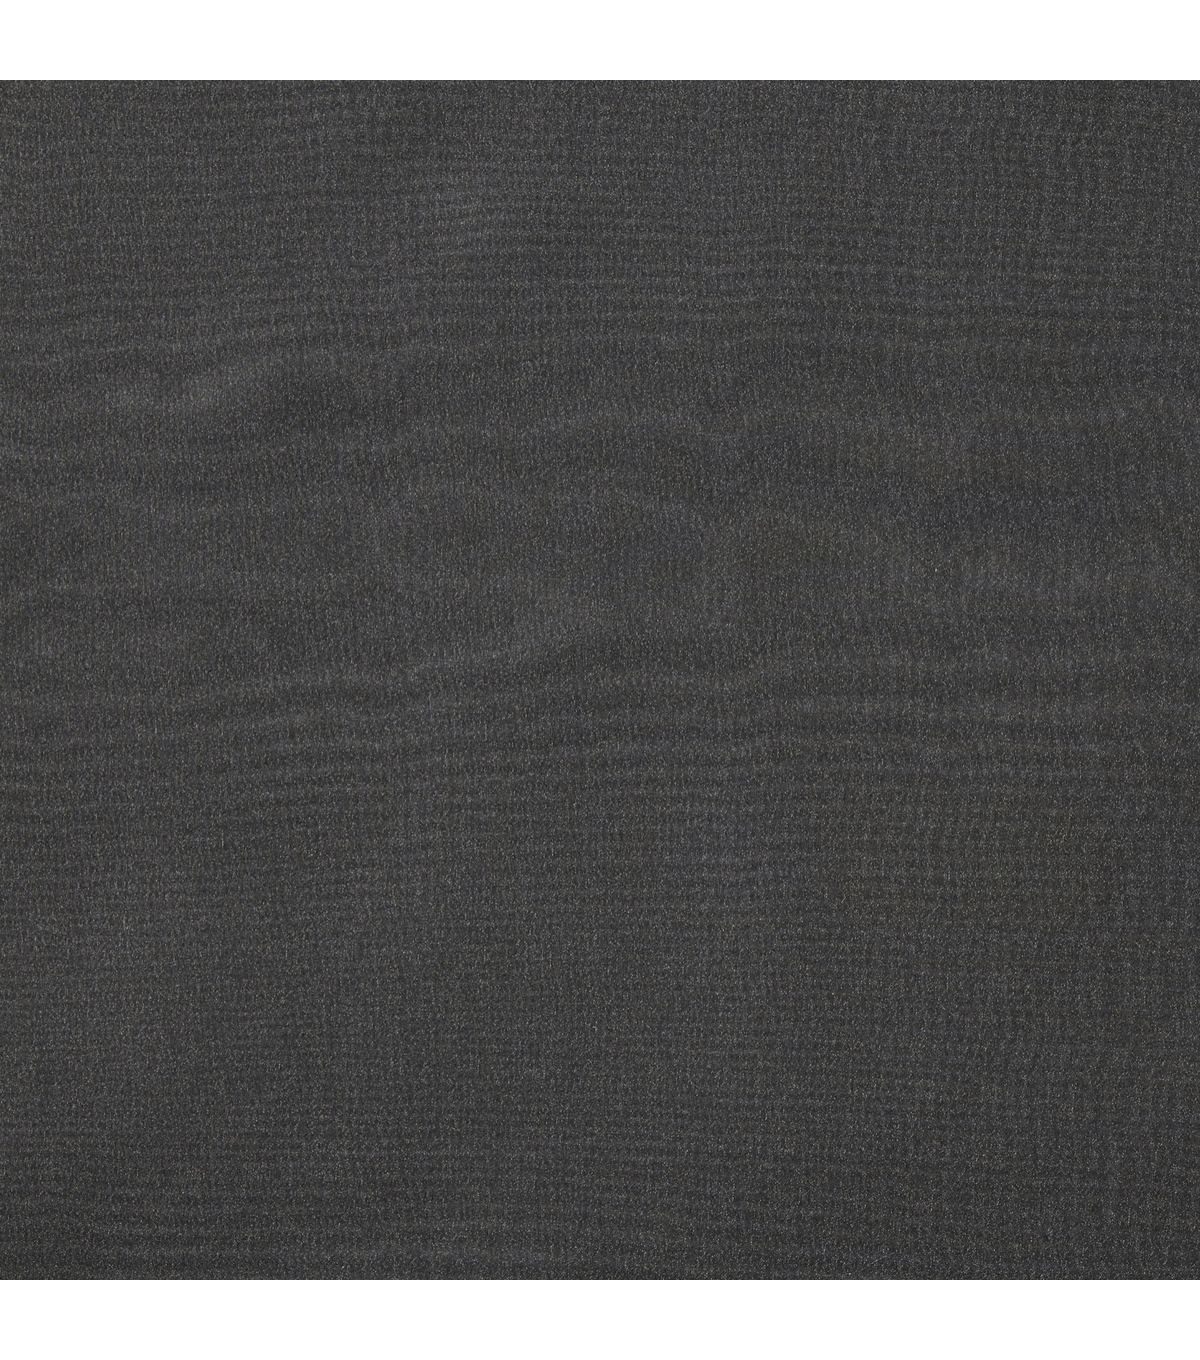 Casa Collection Solid Crepon Sheer Fabric, Black